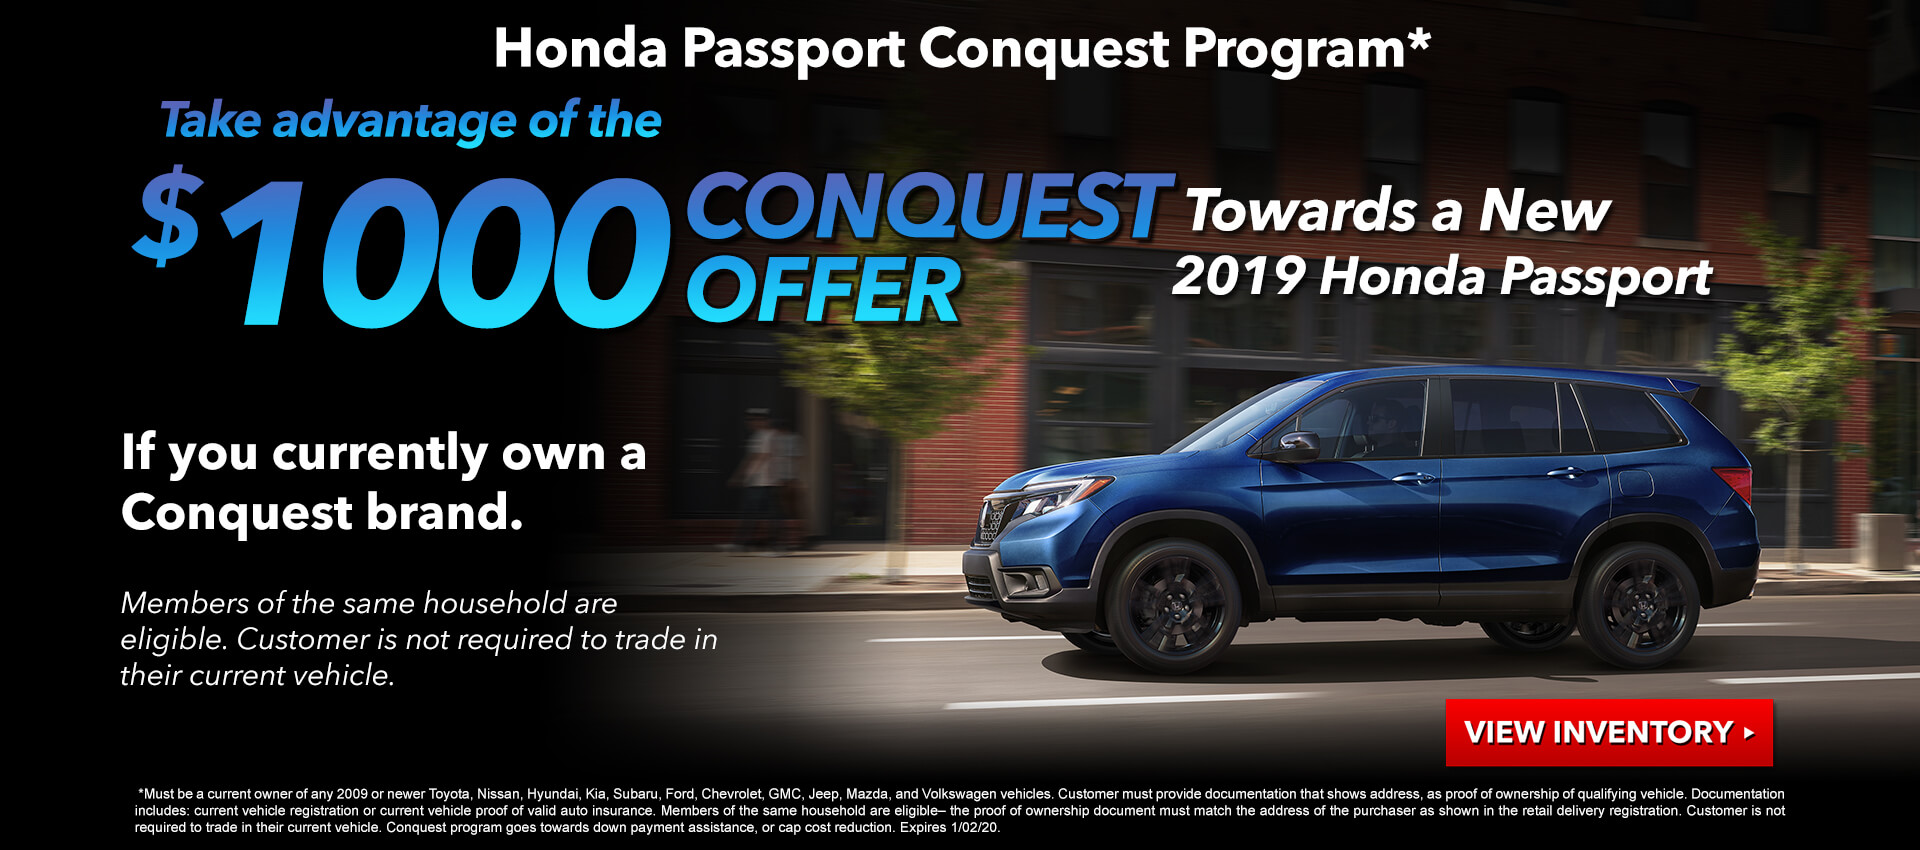 Honda Passport Conquest Program